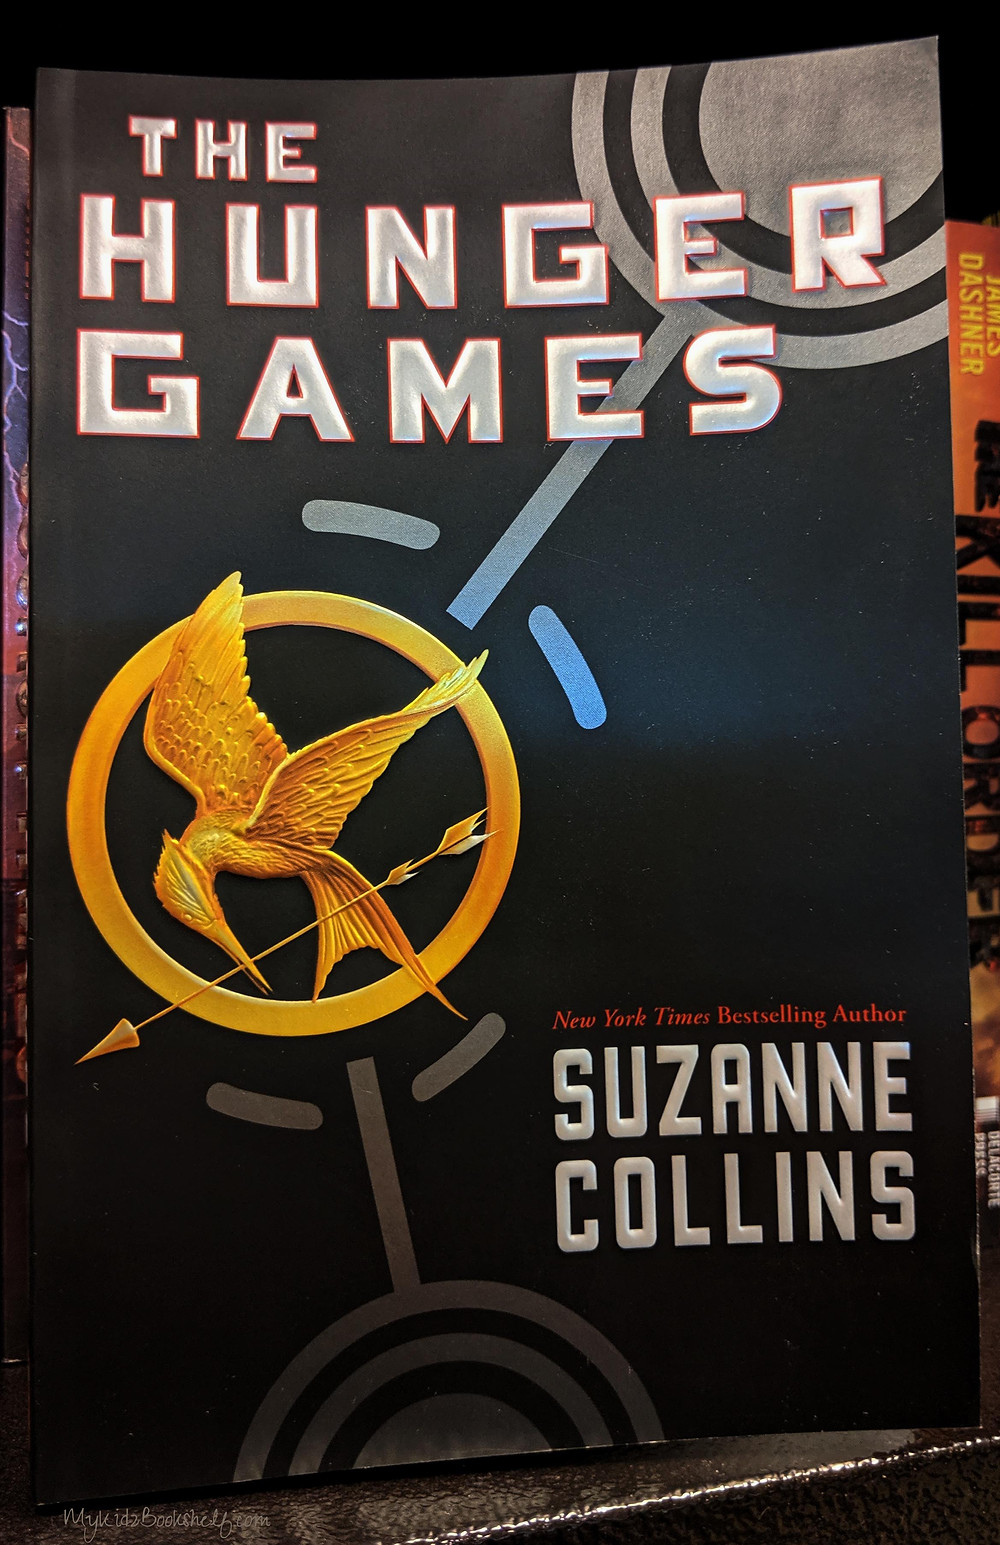 The-Hunger-Games-by-Suzanne-Collins-New-York-Times-bestselling-series-The-Hunger-Games-Trilogy